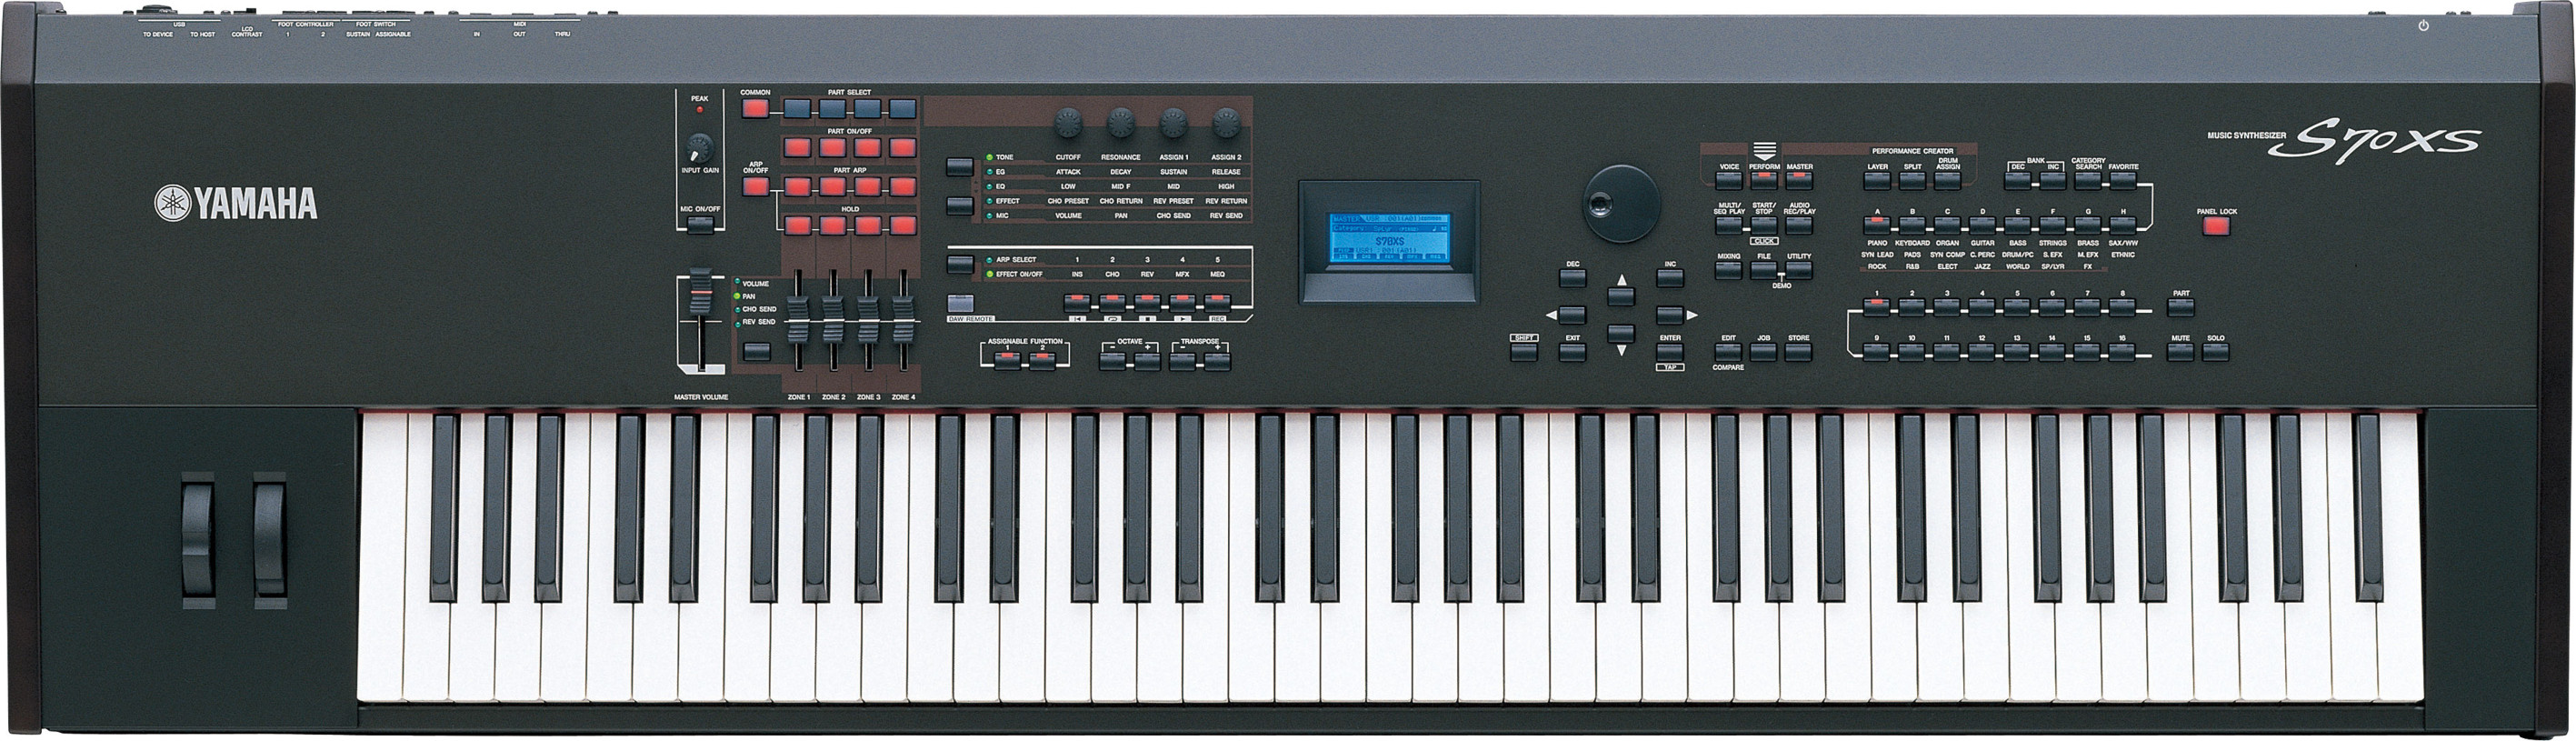 Yamaha s70xs professional synthesizer stage piano fully weighted 76 key yamaha music london for Yamaha fully weighted keyboard